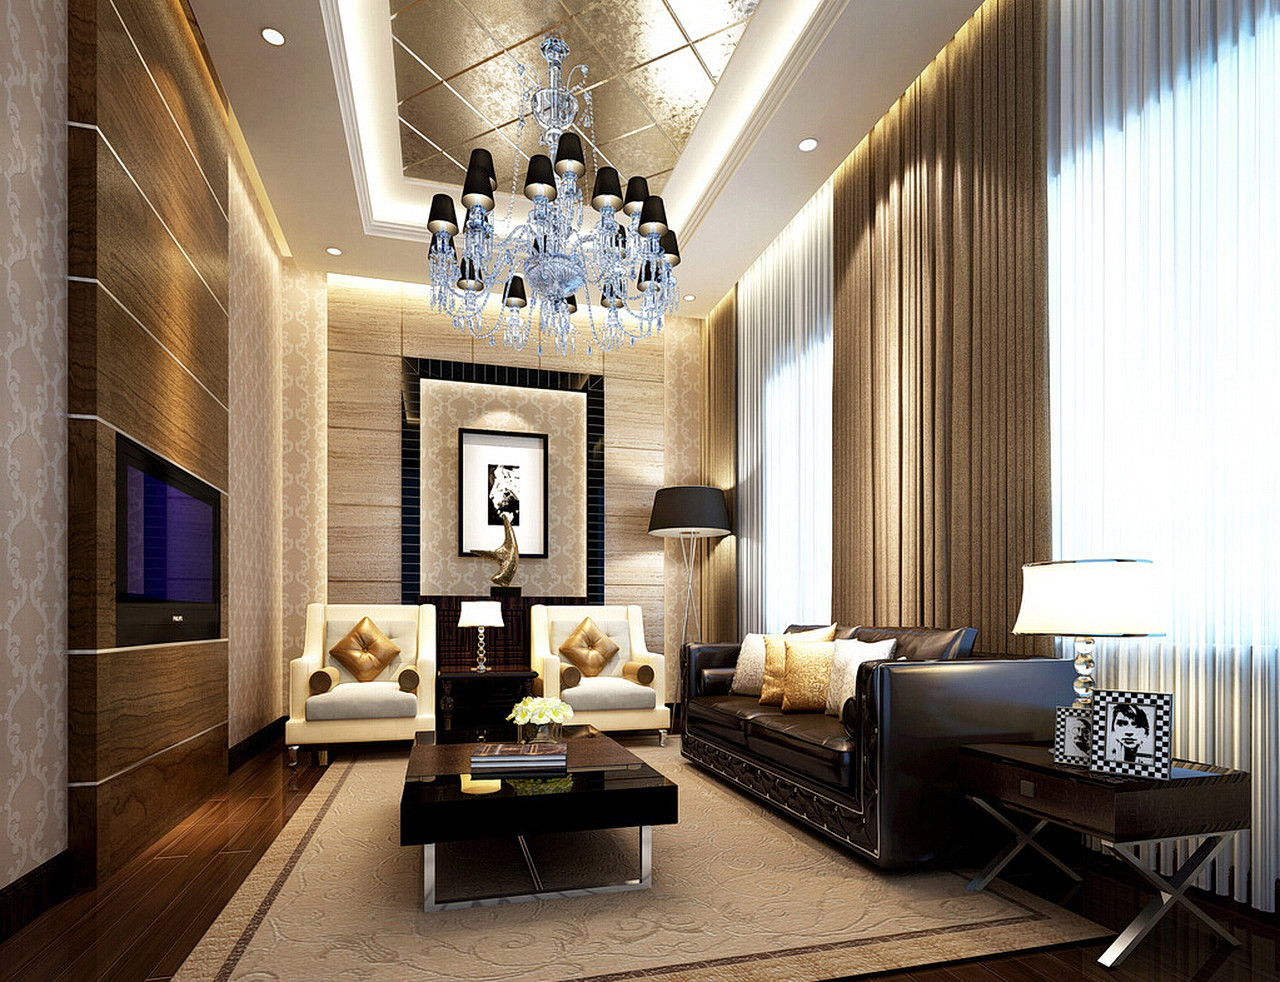 Best ideas about Ceiling Lights For Living Room . Save or Pin 77 really cool living room lighting tips tricks ideas Now.